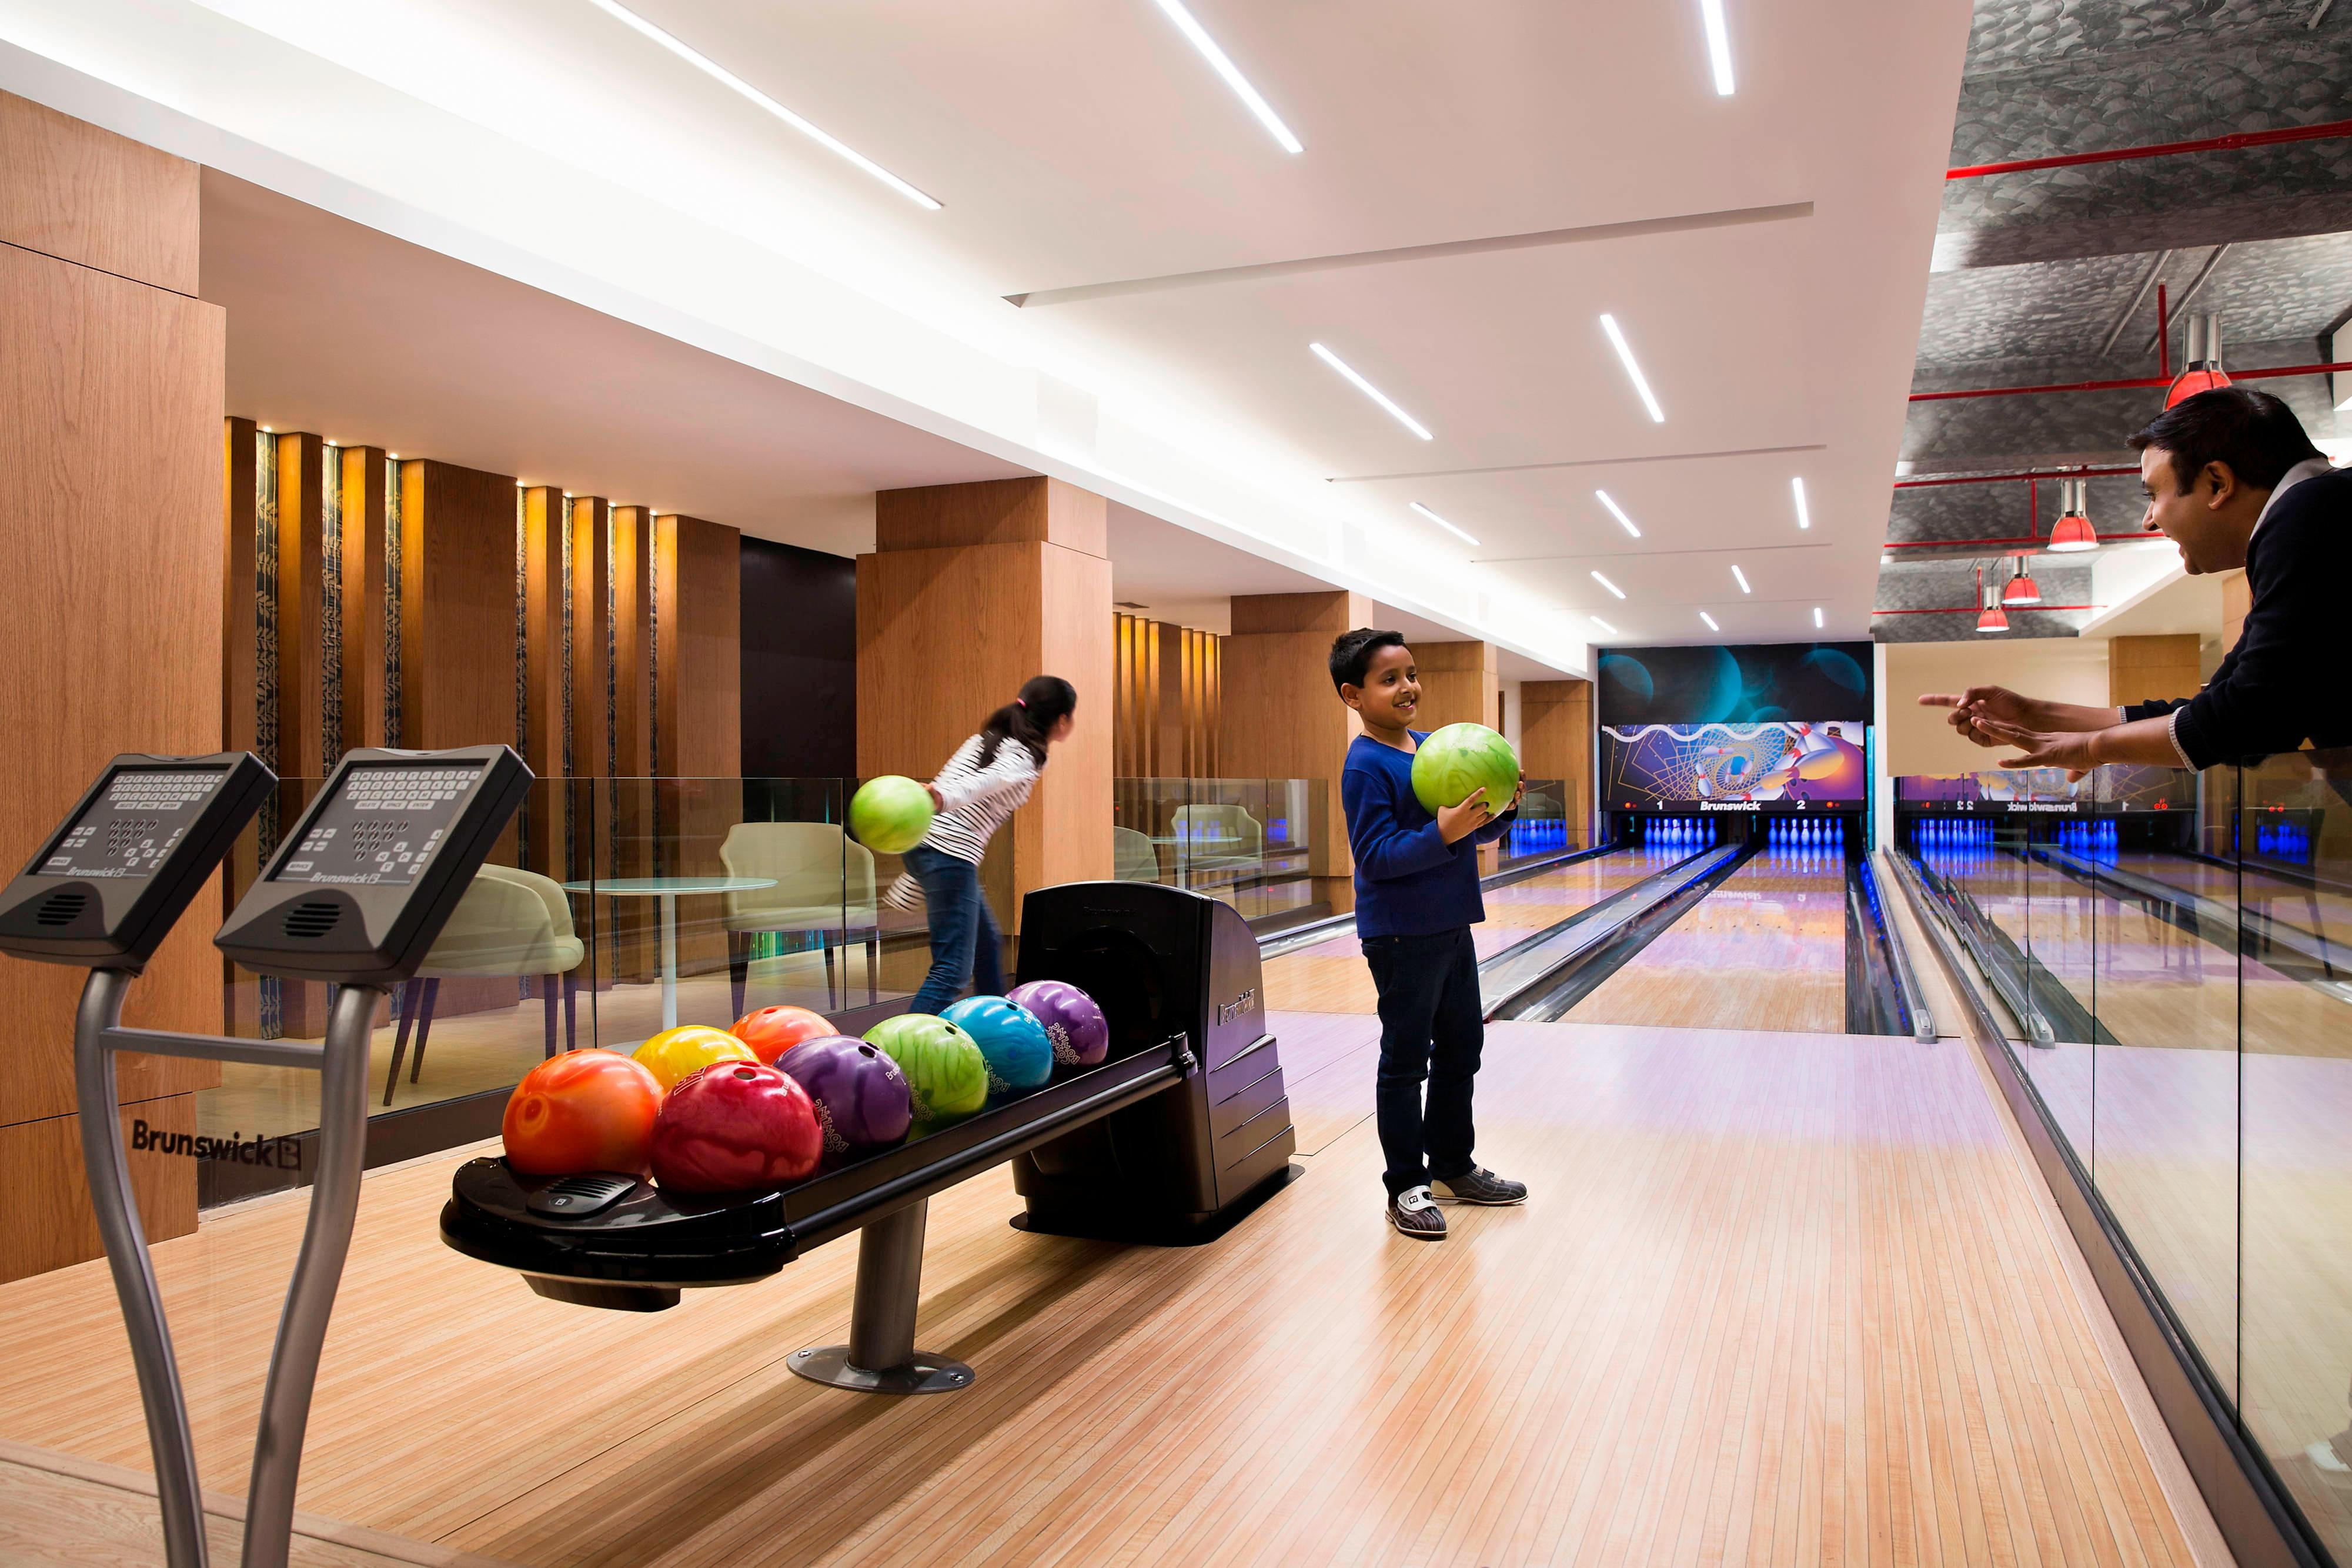 The Den – Bowling Area